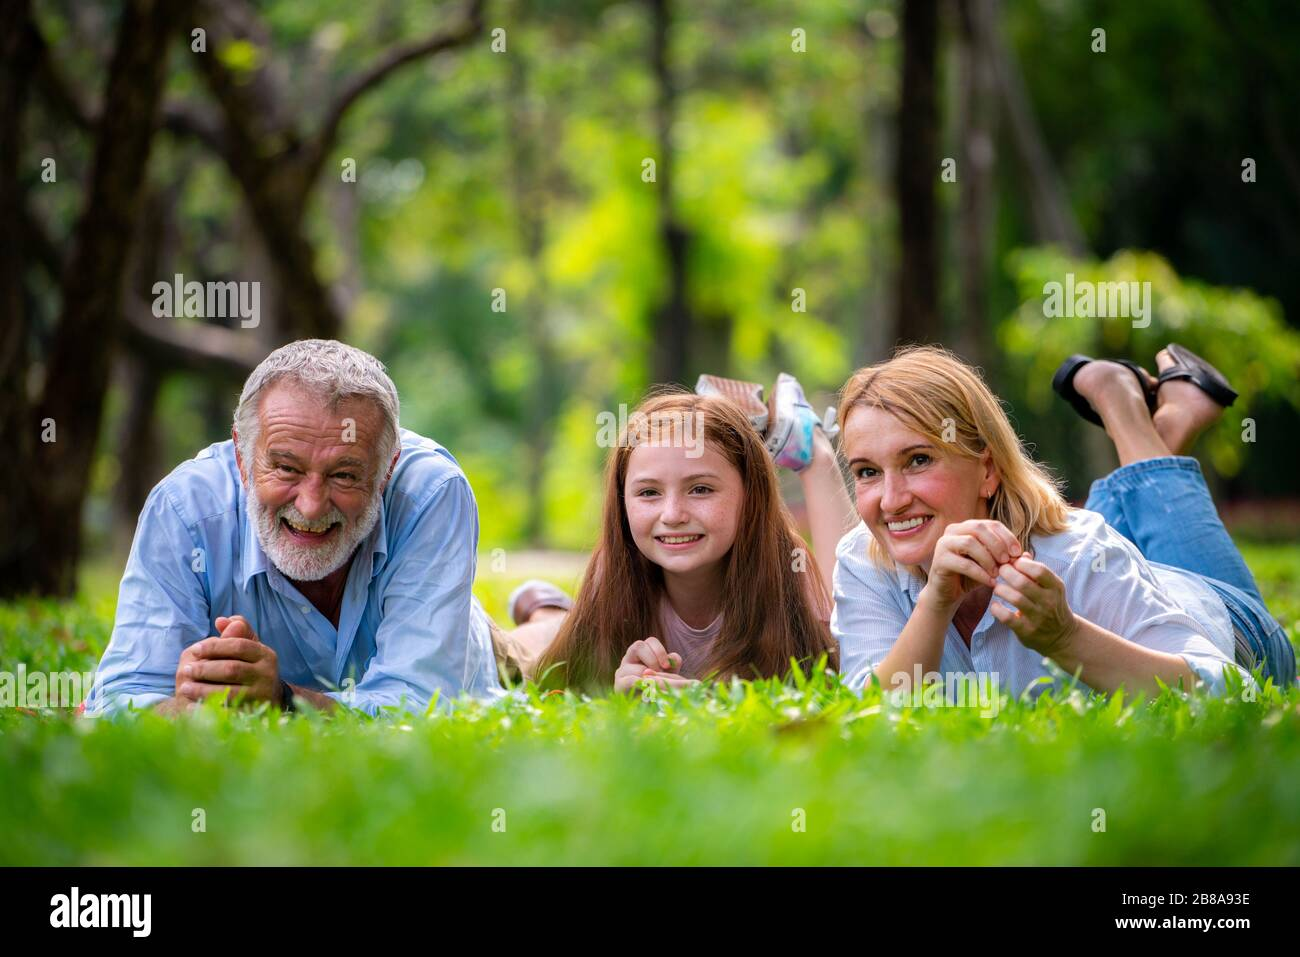 Old Man With Young Girl Stock Photos Old Man With Young Girl